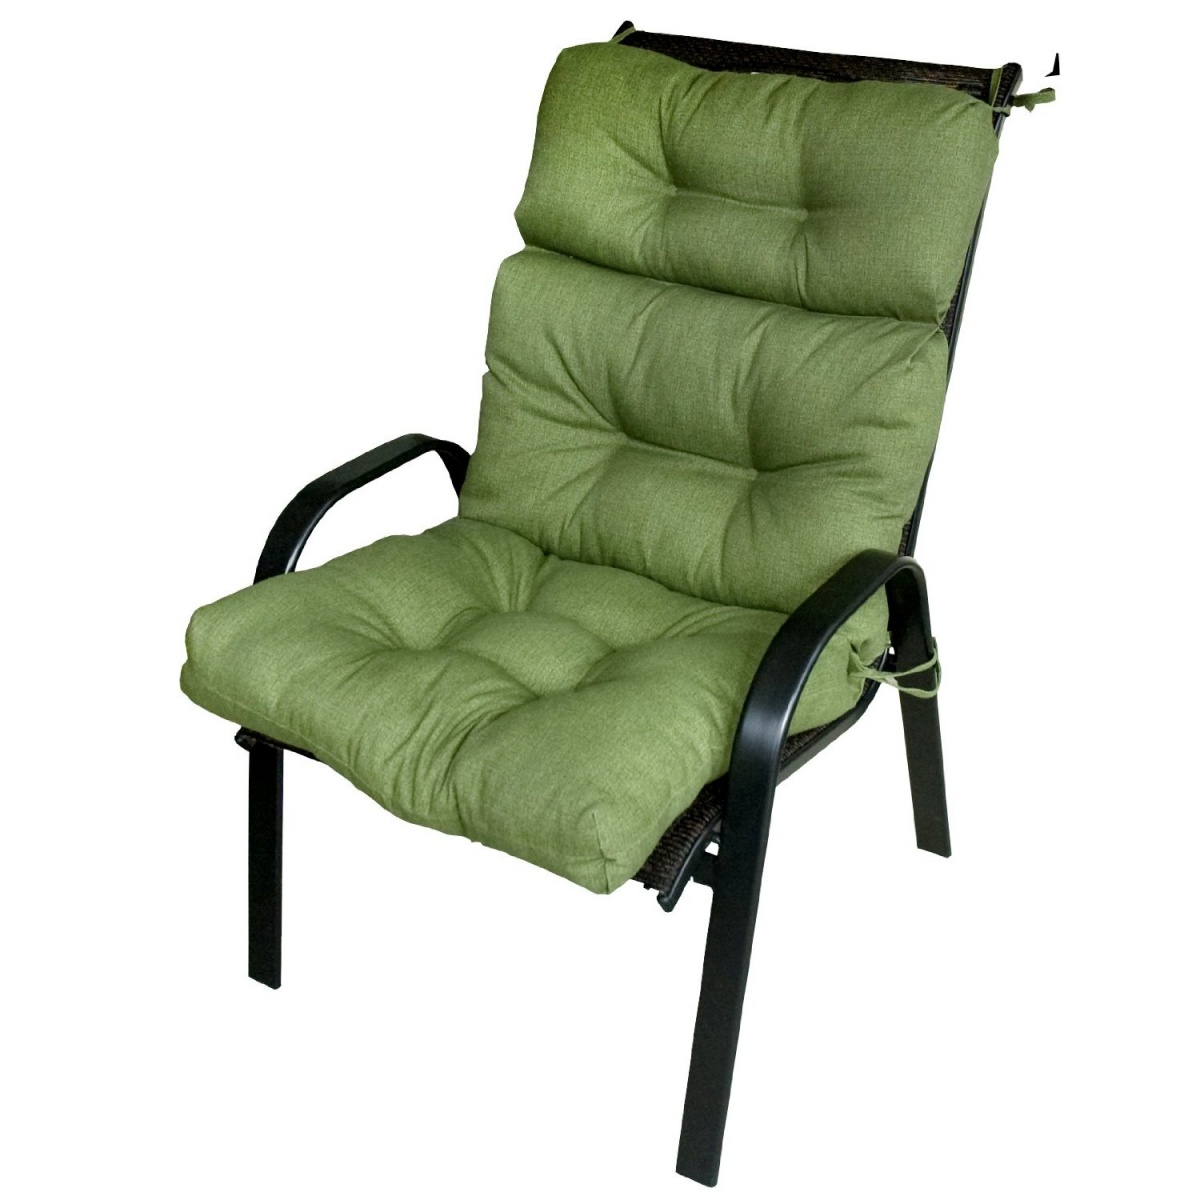 Image of: Top Patio Chair Cushion